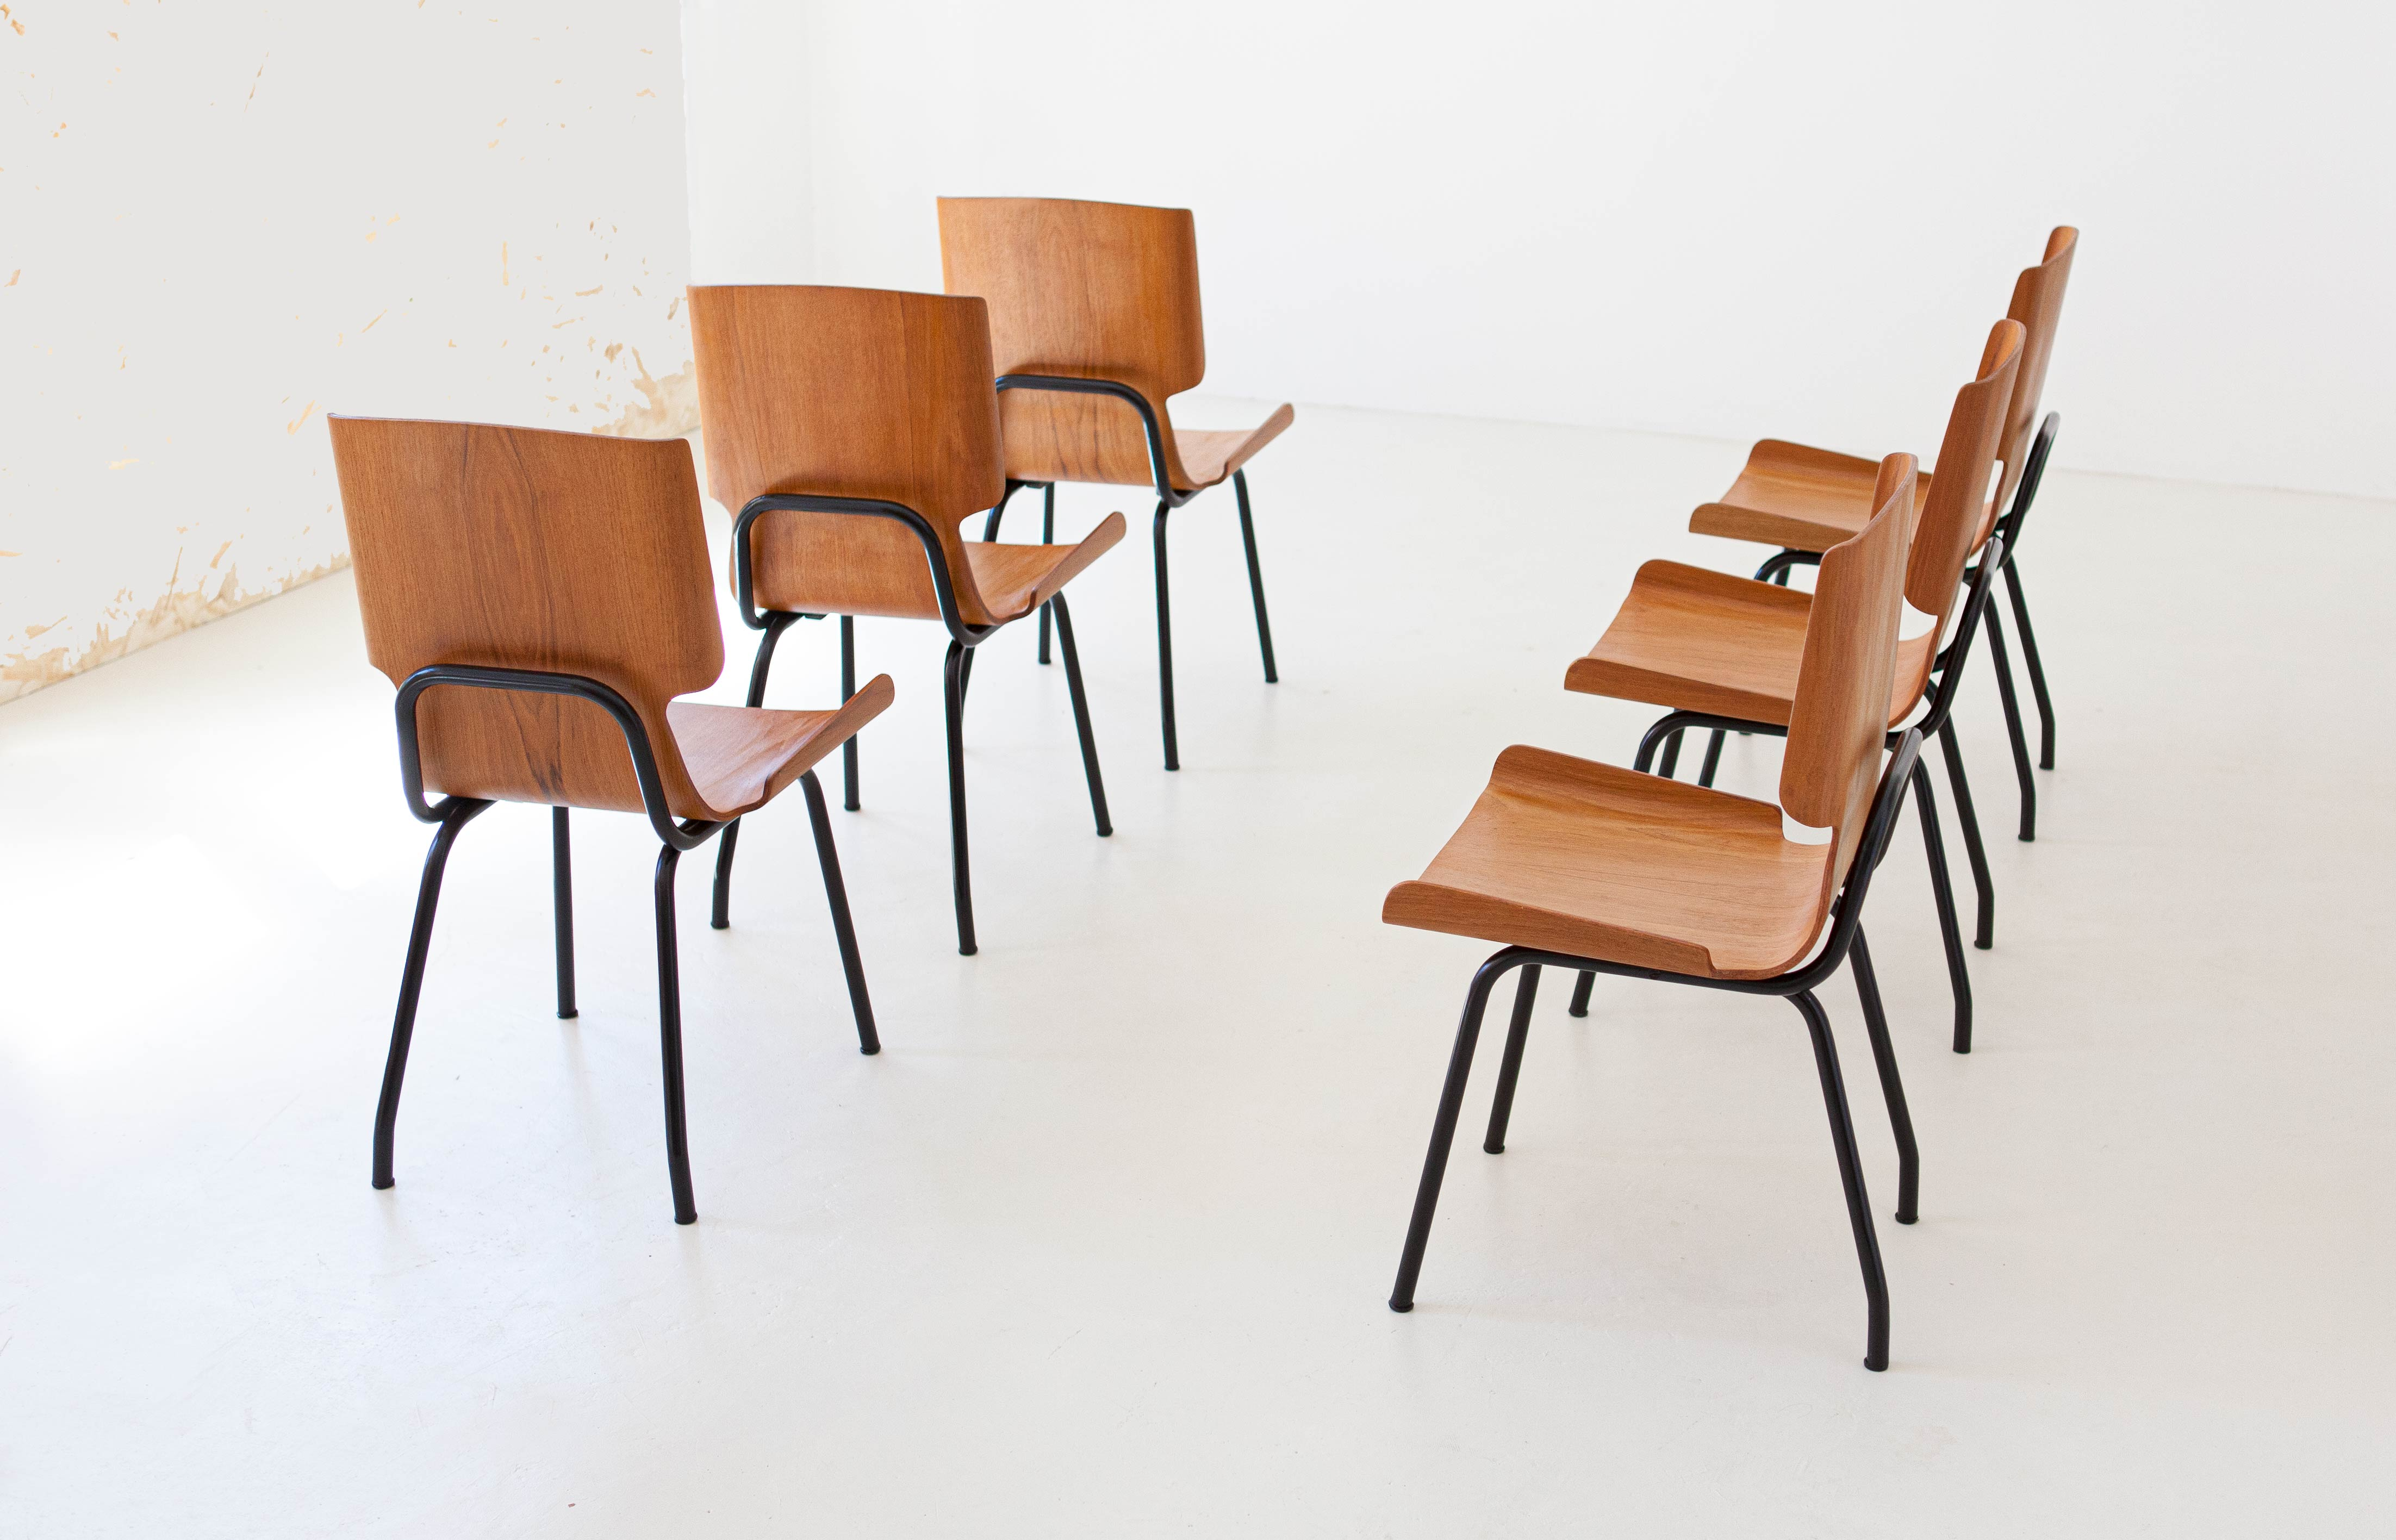 1950s-set-of-six-curved-teak-chairs-by-carlo-ratti-2-se311